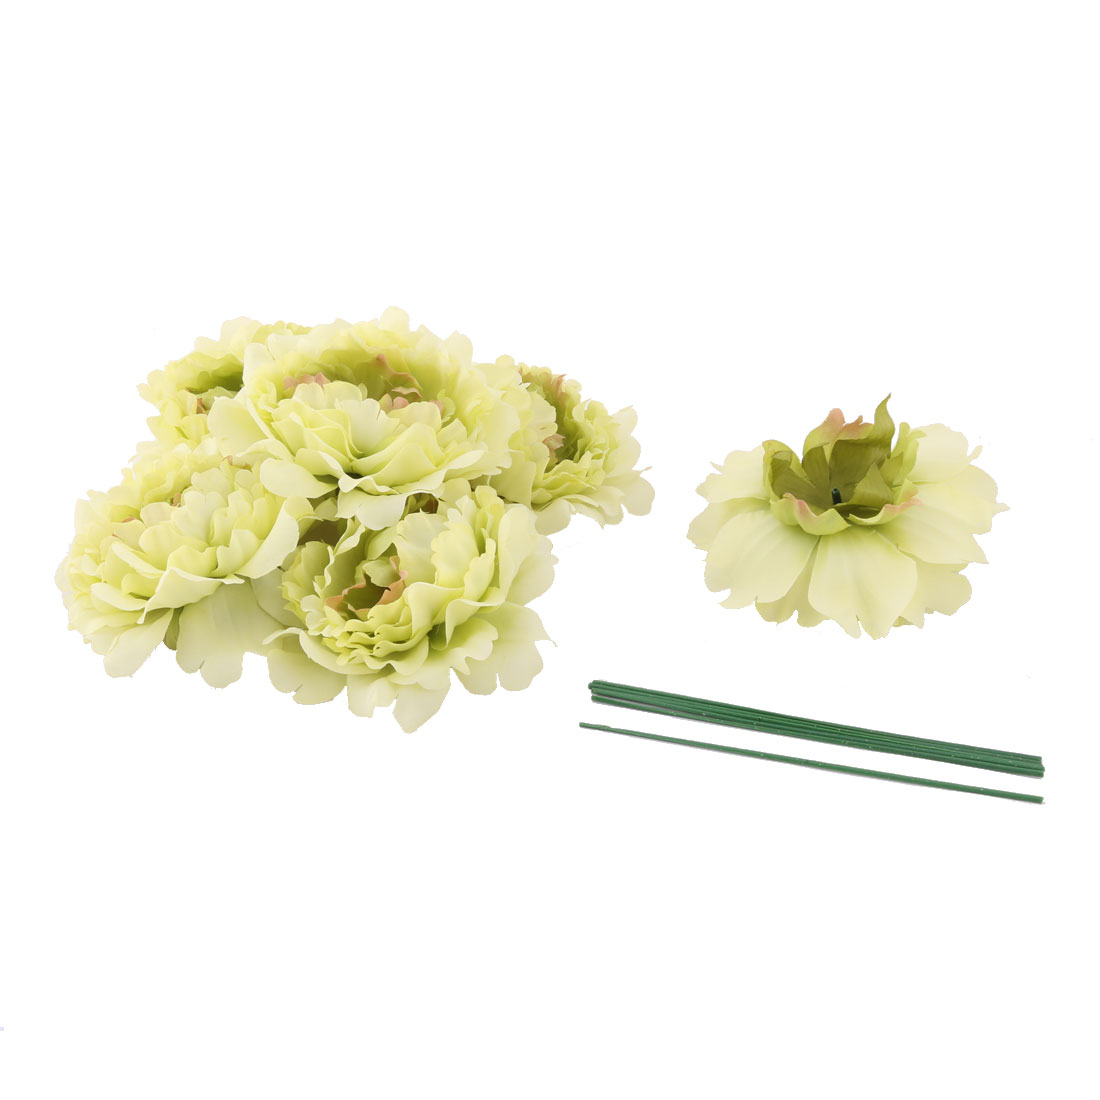 Household Party Fabric Handicraft DIY Decoration Artificial Flower Heads Green 6 Pcs